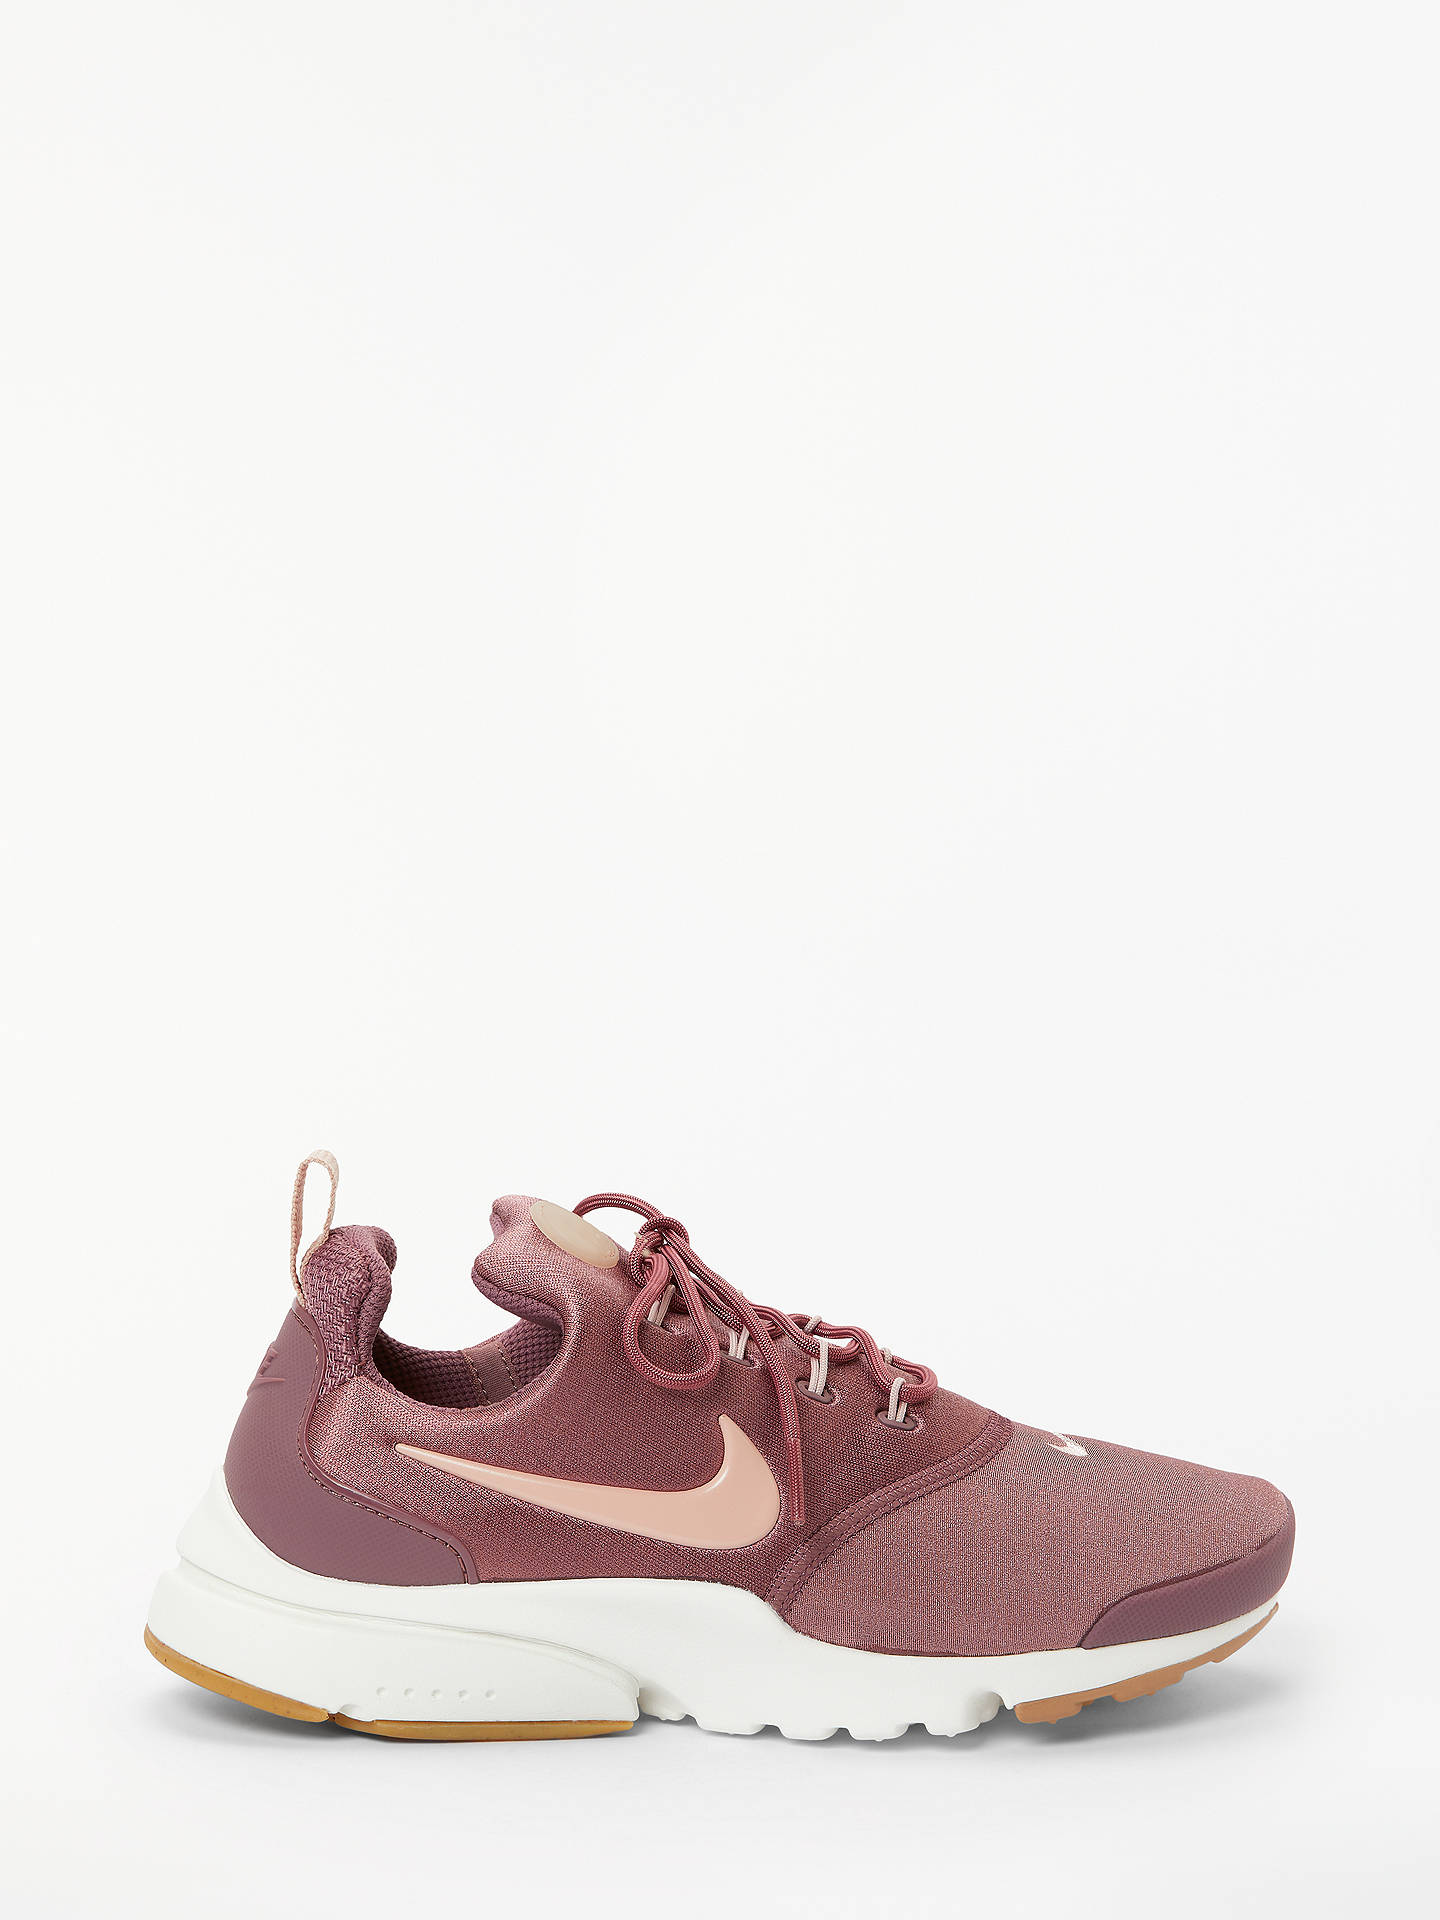 e5066c7a871c Nike Presto Fly Women s Trainers at John Lewis   Partners